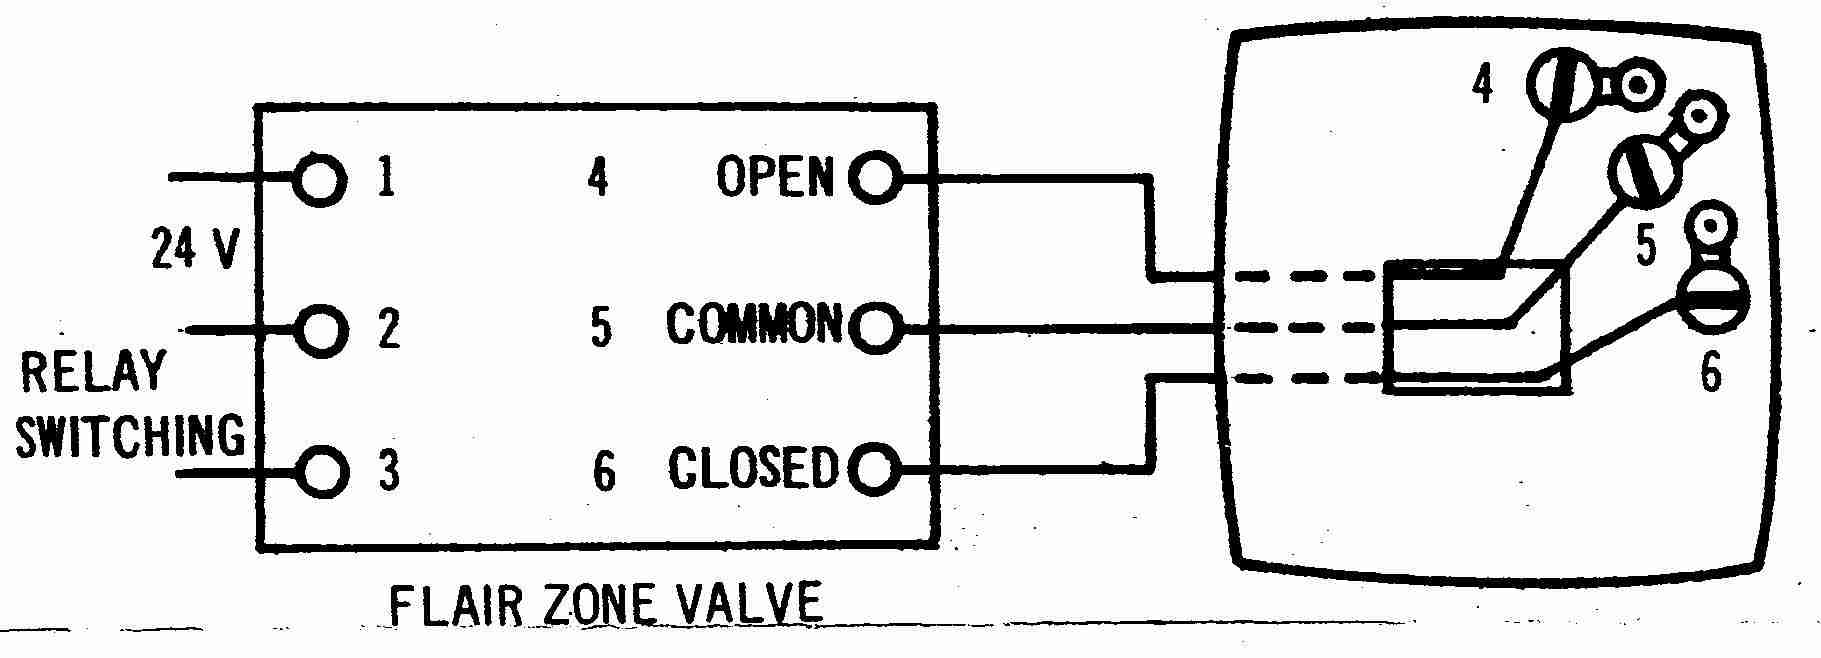 Flair3w_001_DJFc2 zone valve wiring installation & instructions guide to heating honeywell 4 wire zone valve wiring diagram at soozxer.org